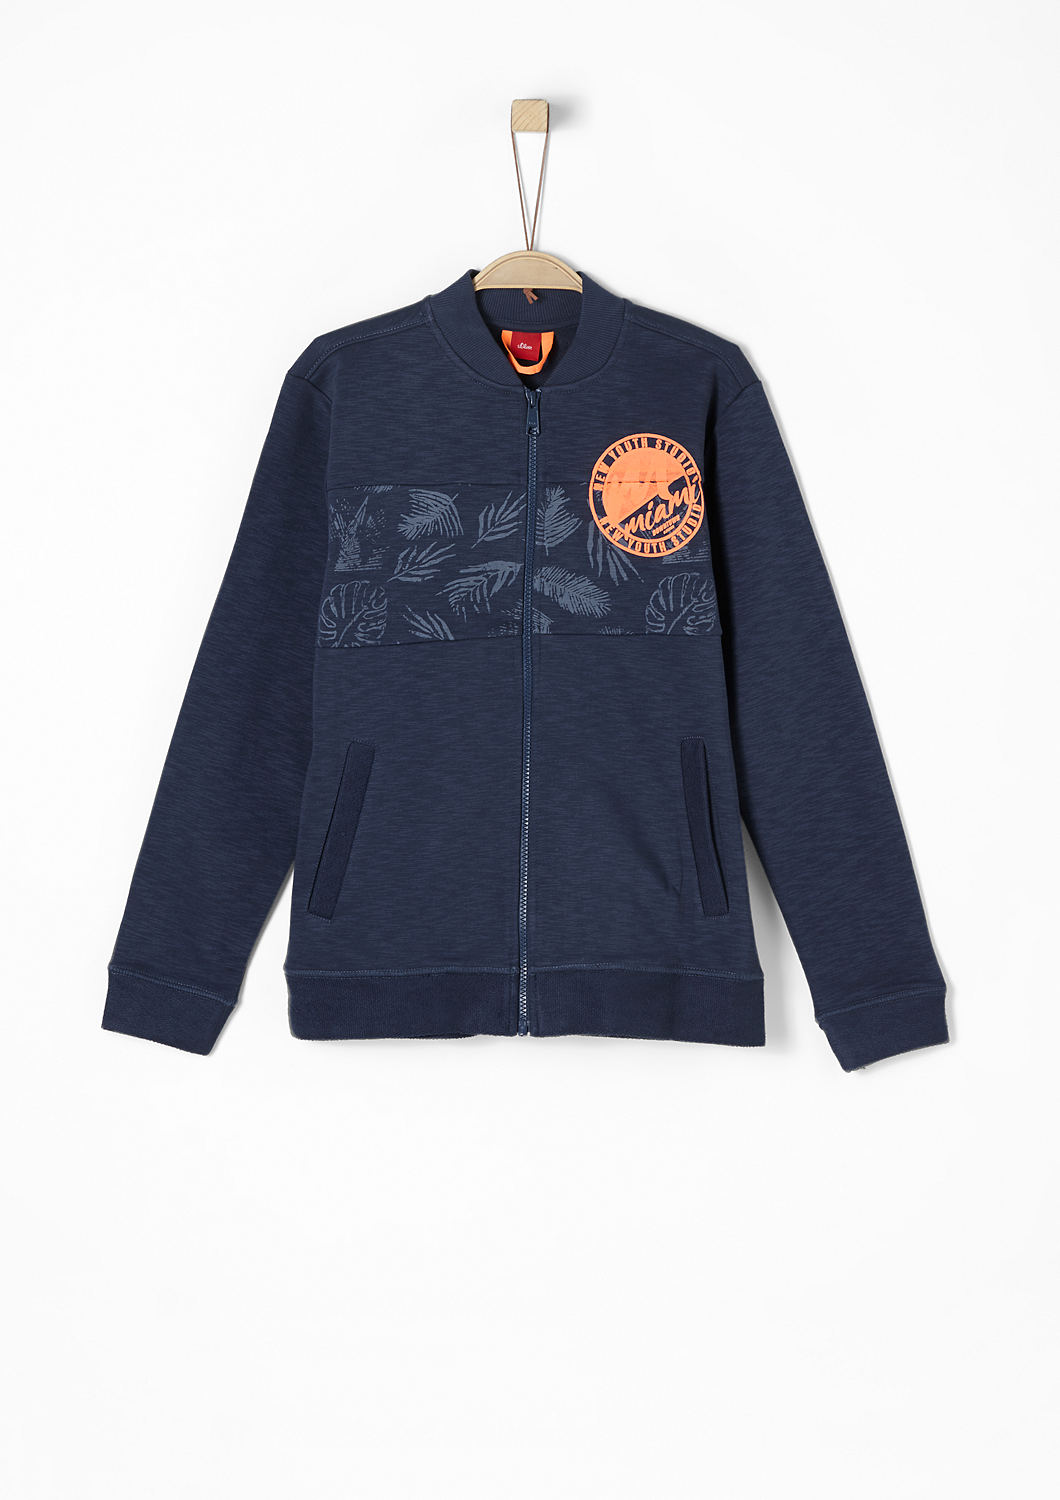 info for 553dd 8abd8 Buy Sweatshirt jacket in a bomber style | s.Oliver shop